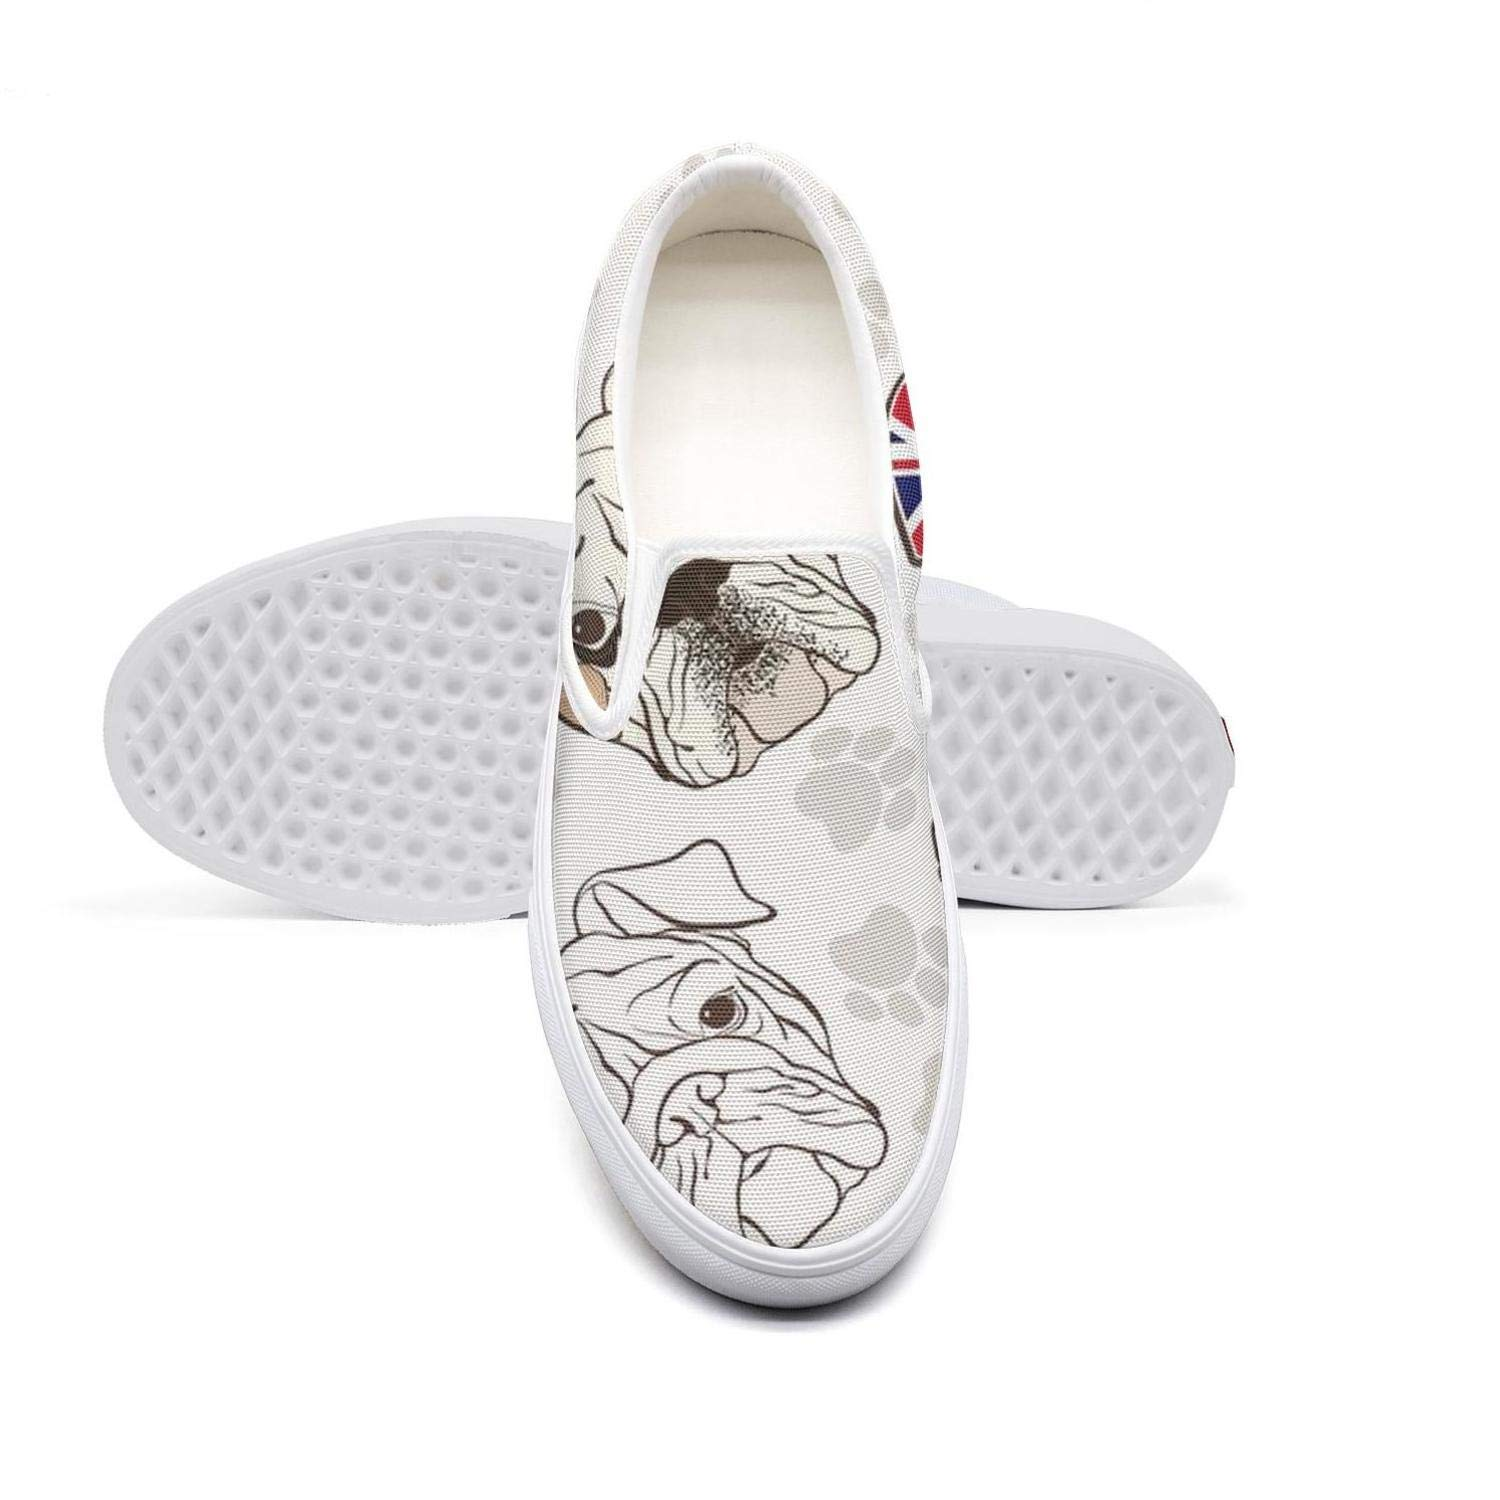 Daisy Fabric French Bulldogs Womens Classic Slip on Basketball Canvas Shoes Athletic Low Top Sneaker